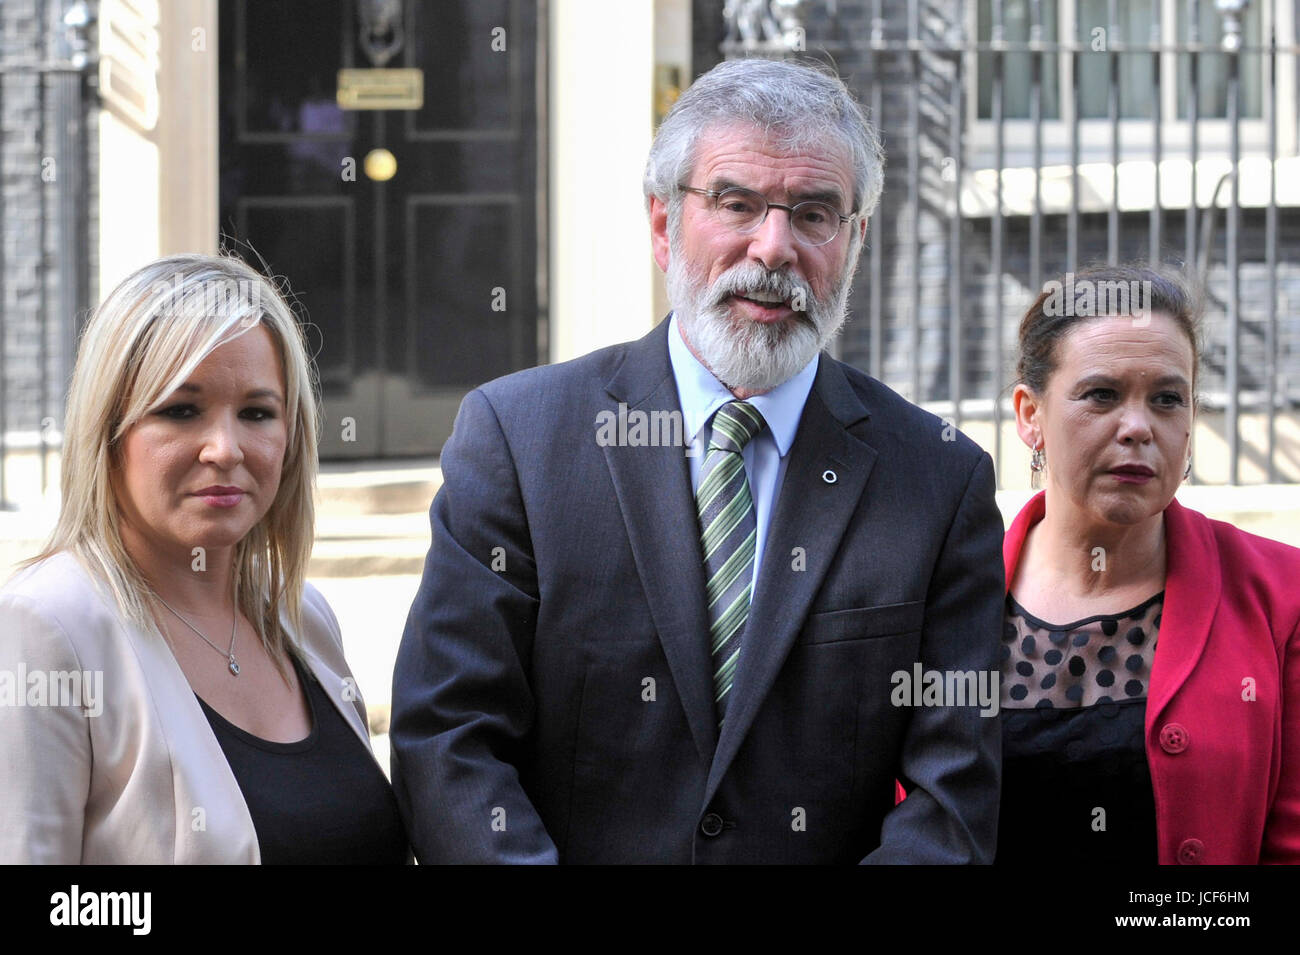 London, UK. 15th June, 2017. (L to R) Michelle O'Neill, leader of Sinn Féin, Gerry Adams, President, and - Stock Image